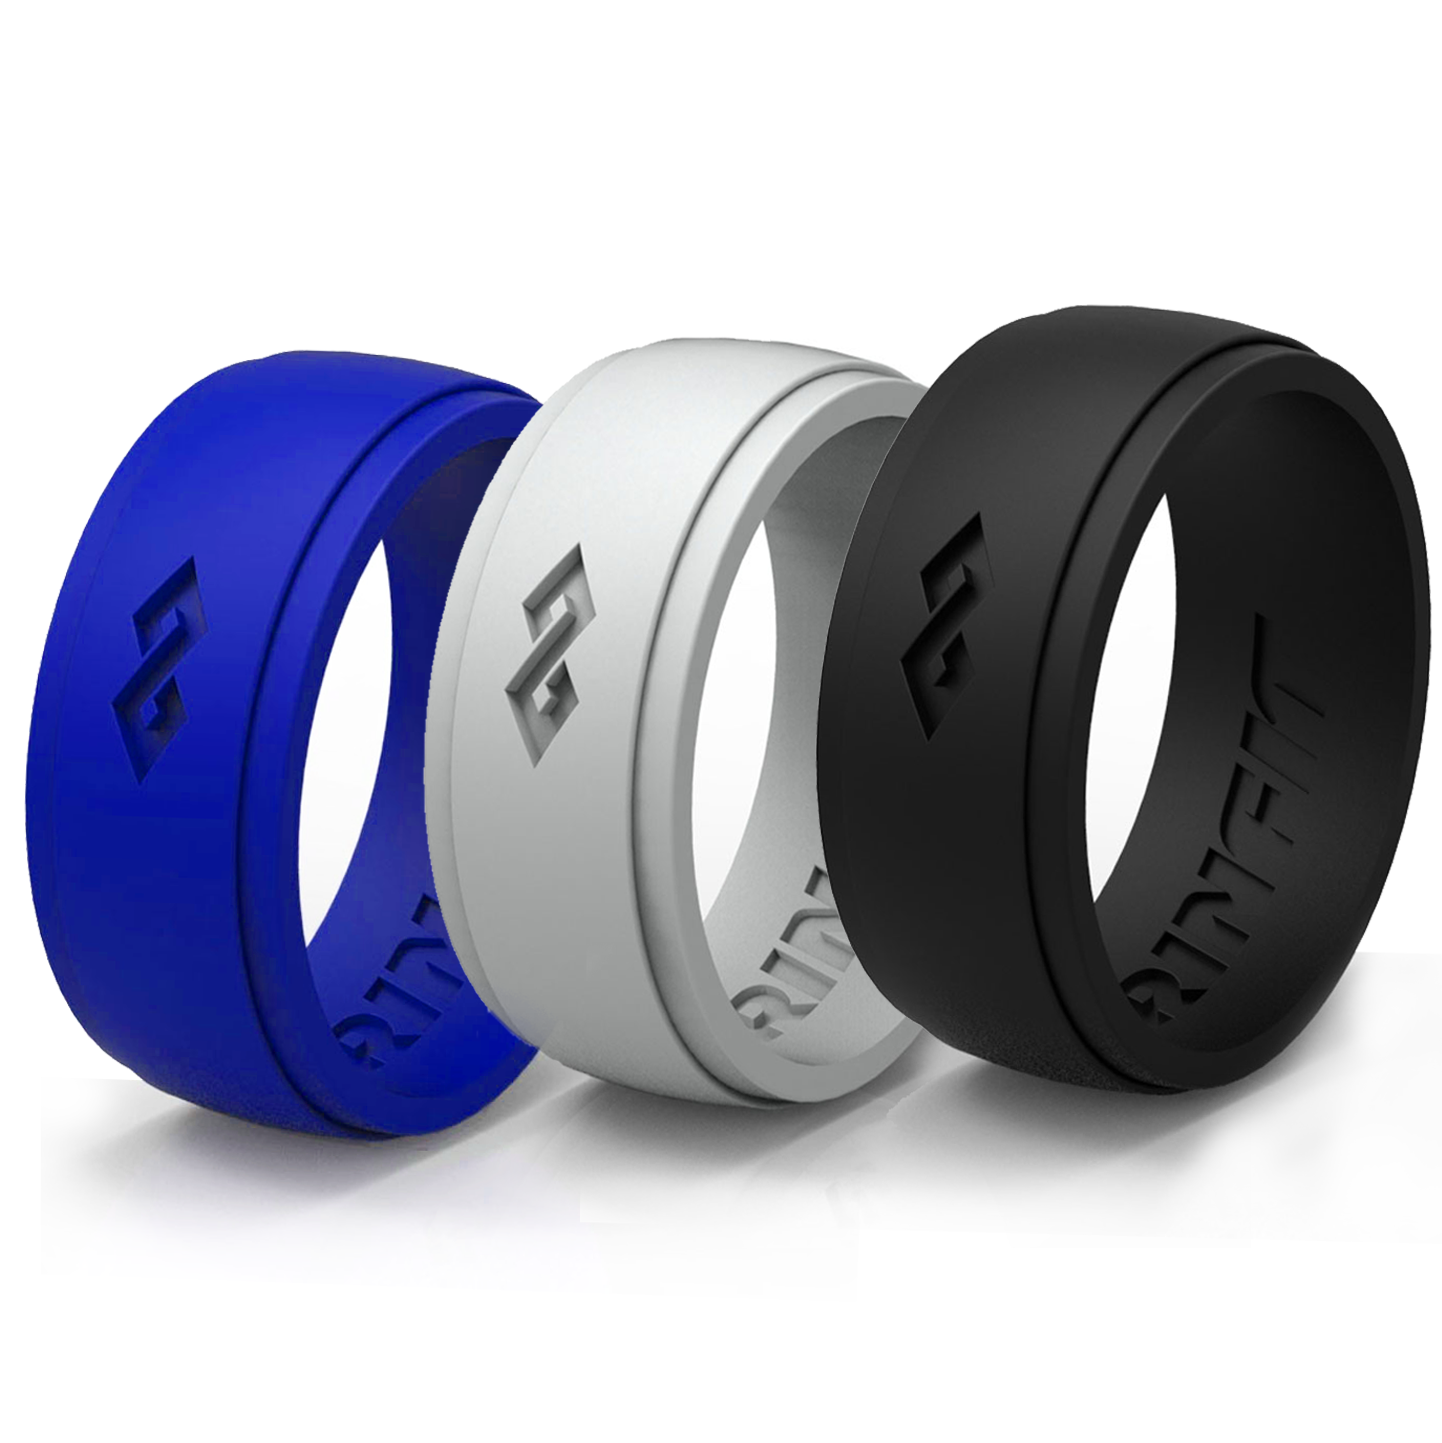 Silicone Ring | Wedding Band For Men by RINFIT,  3 Rings Pack - Premium Quality Silicone Rubber Band. Comes With a Gift -  Designed Gift Package!